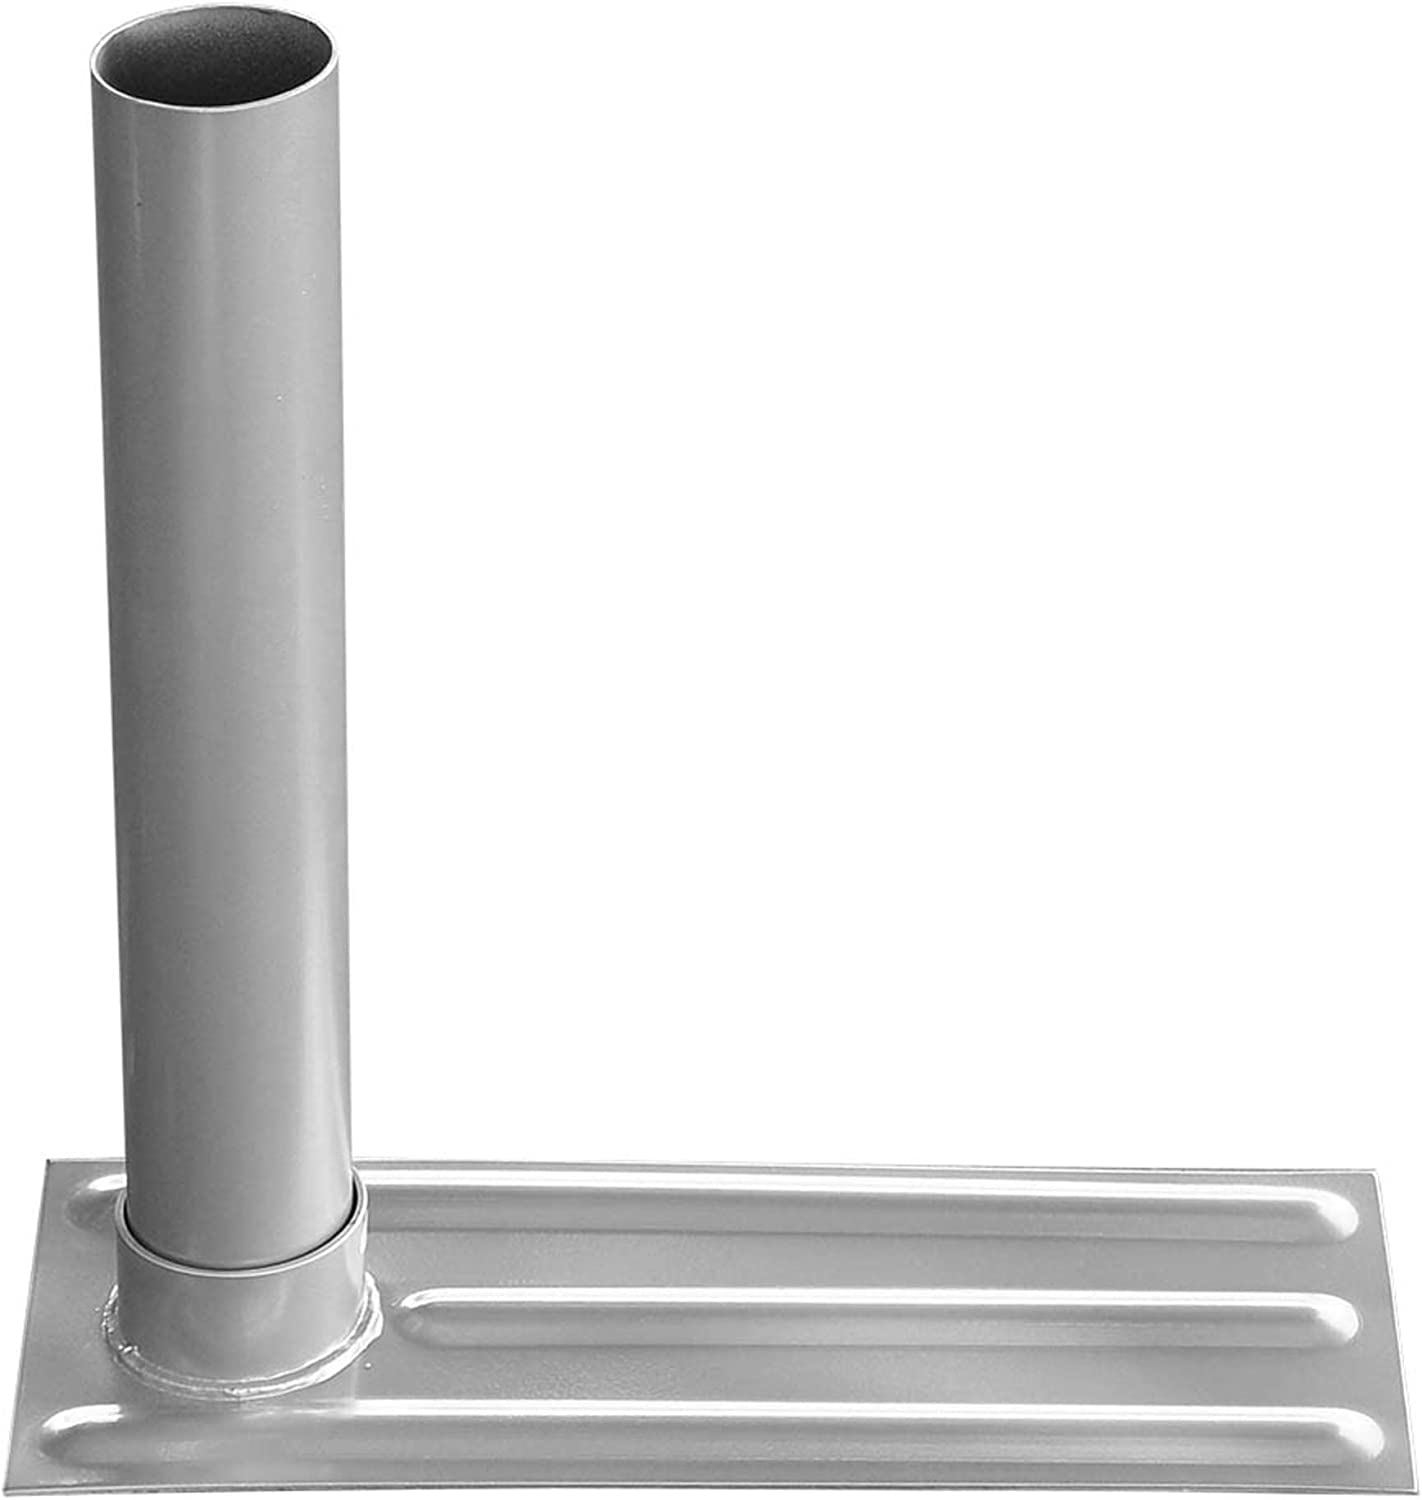 Yeshom Portable All Metal Flag Pole Tailgate Wheel Free Shipping Cheap Bargain Gift Choice Stand Tire Mo